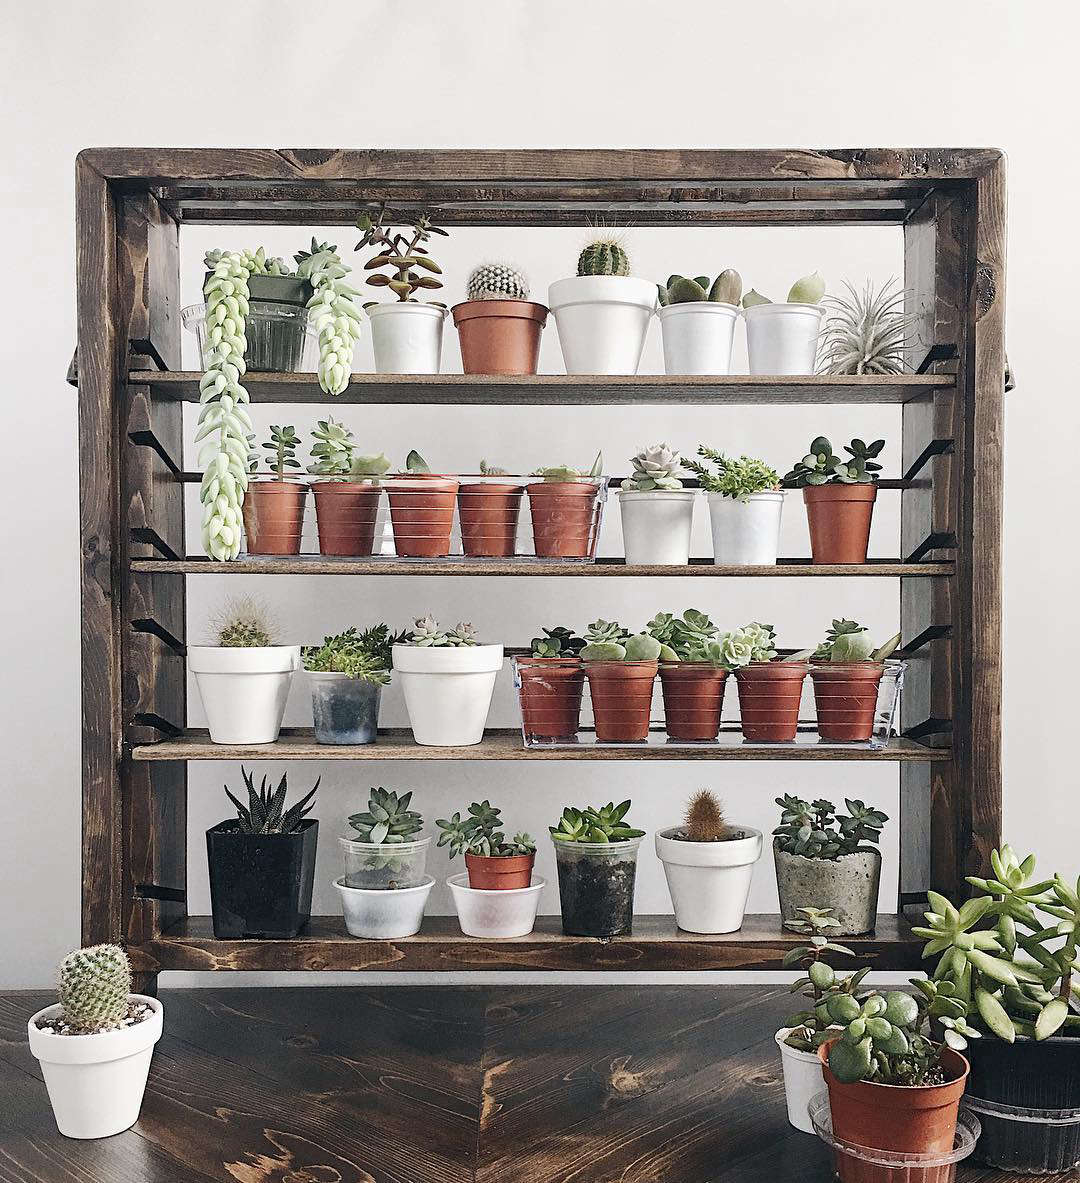 Houseplant 10 Best Hashtags To Explore On Instagram Gardenista